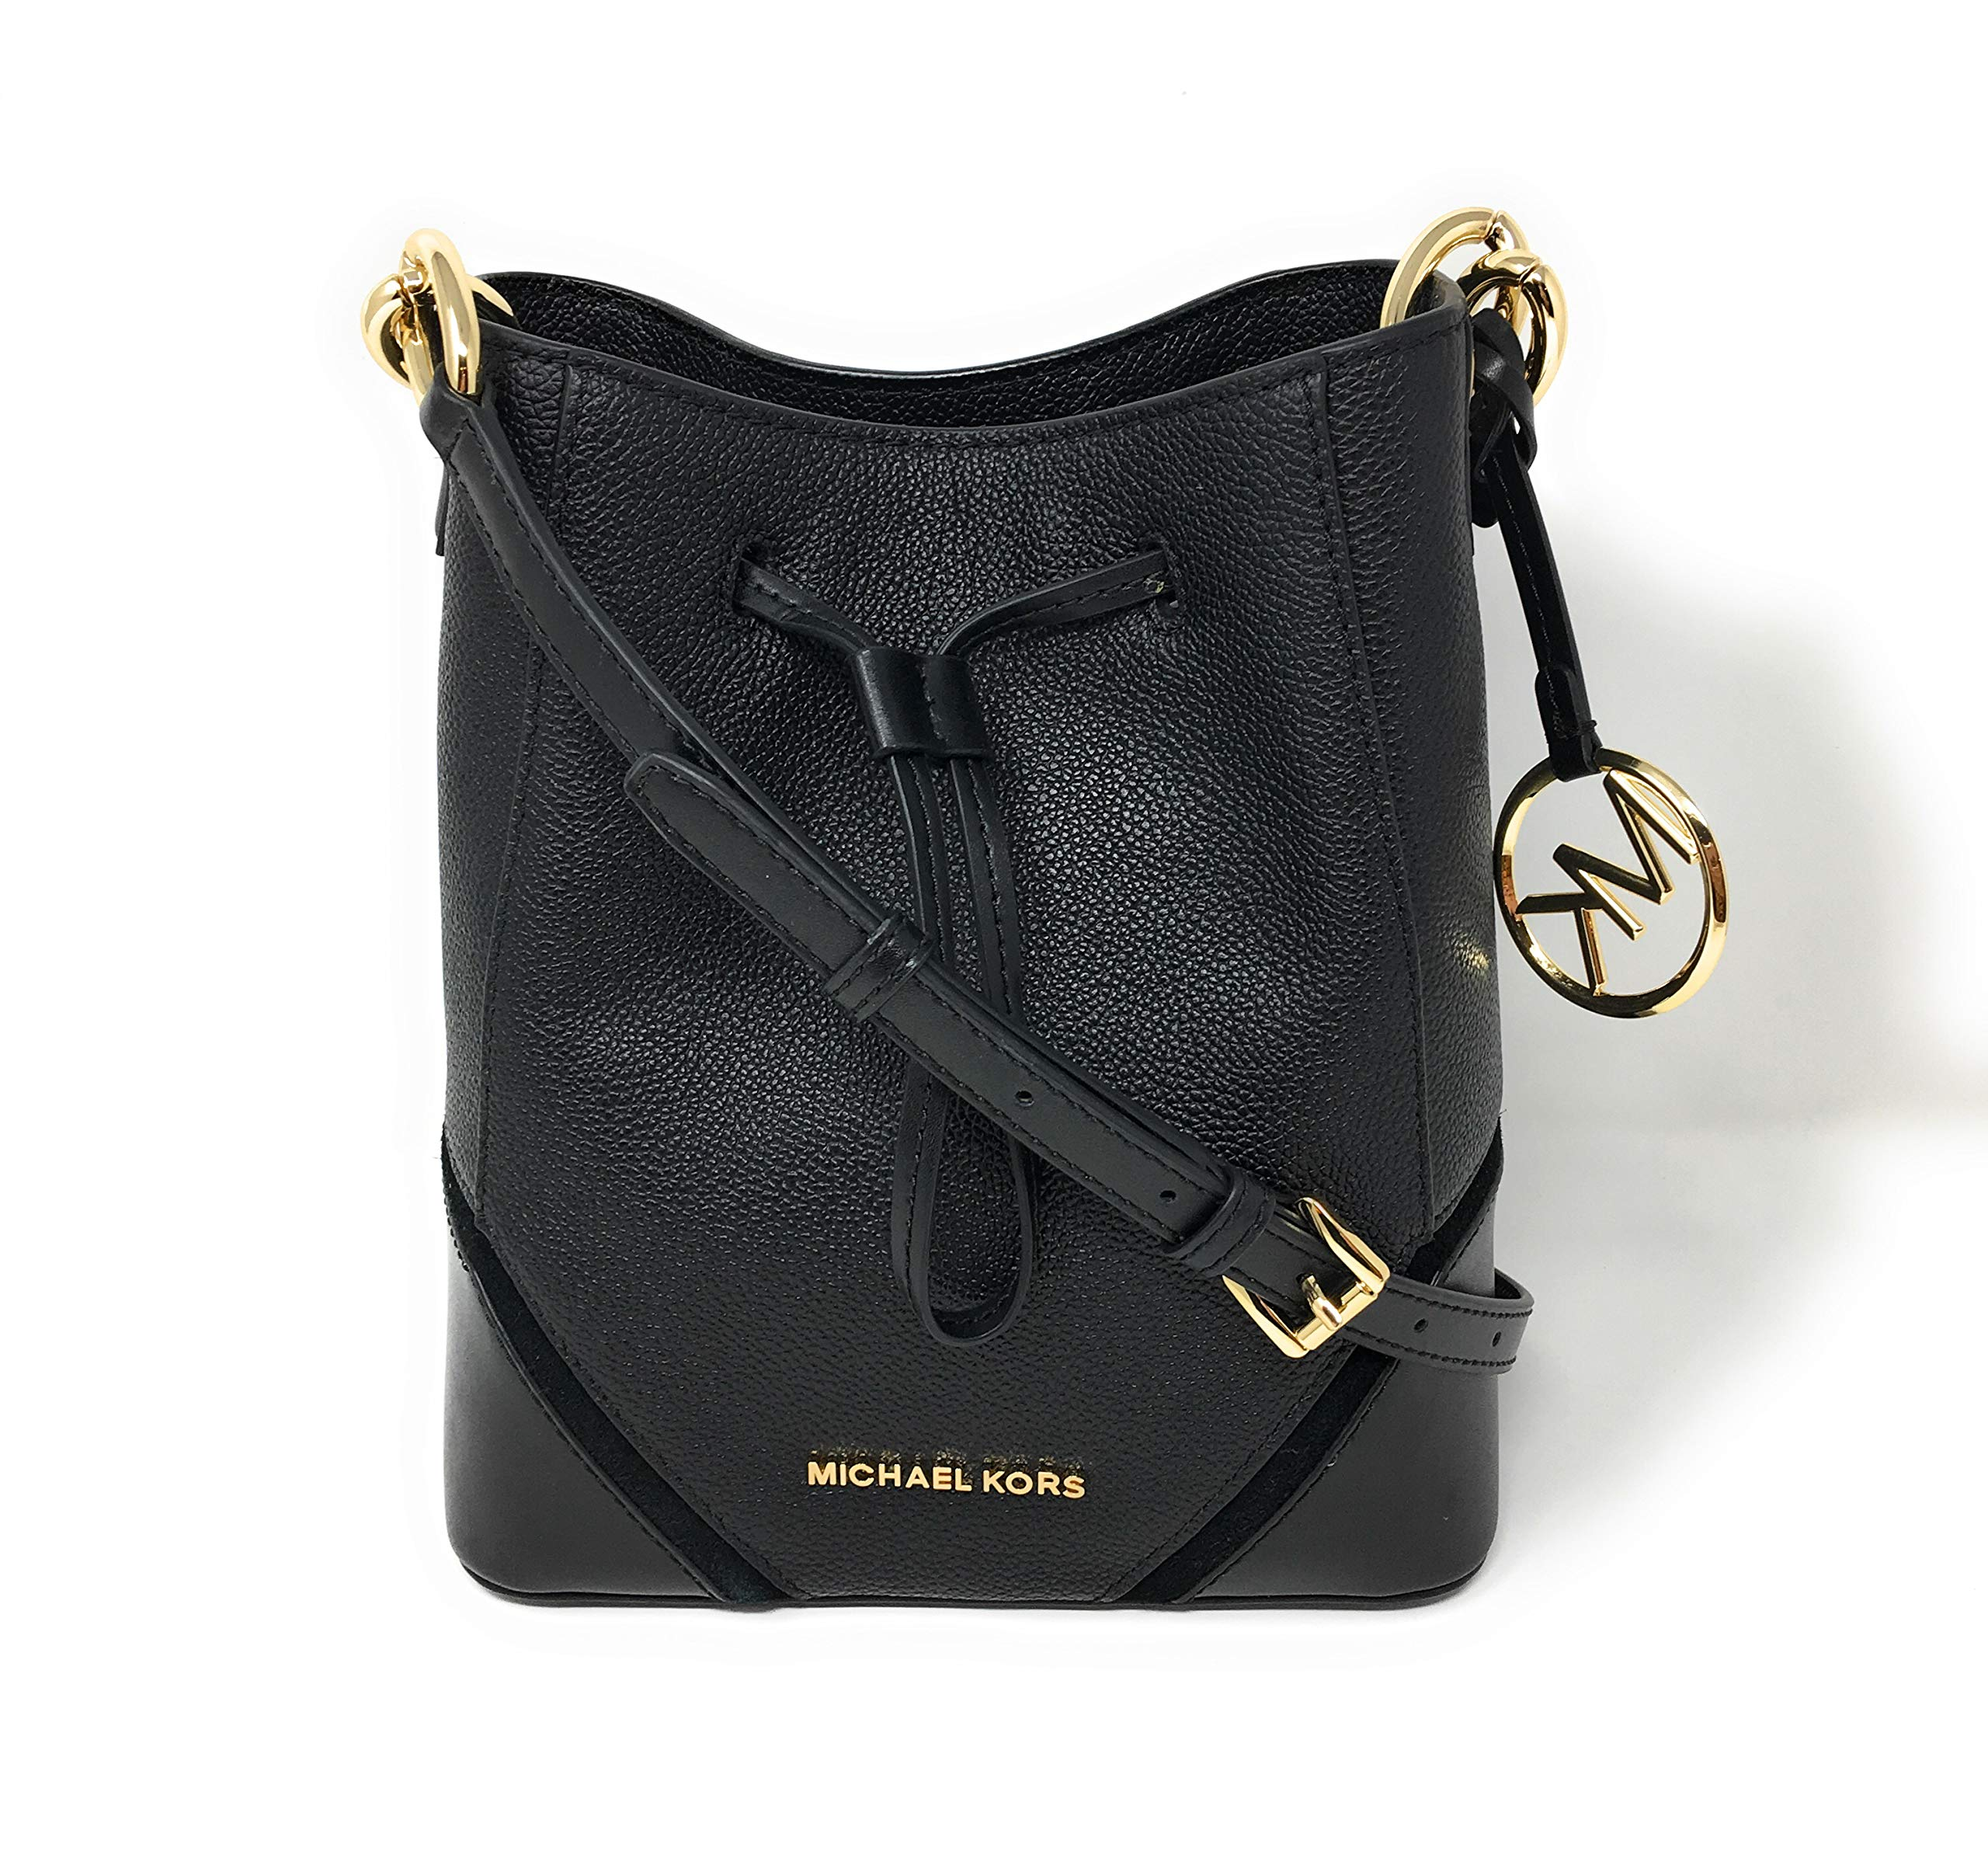 bec2ca3ad2c2 Michael Kors Small Bucket Bag Top Deals & Lowest Price | SuperOffers.com